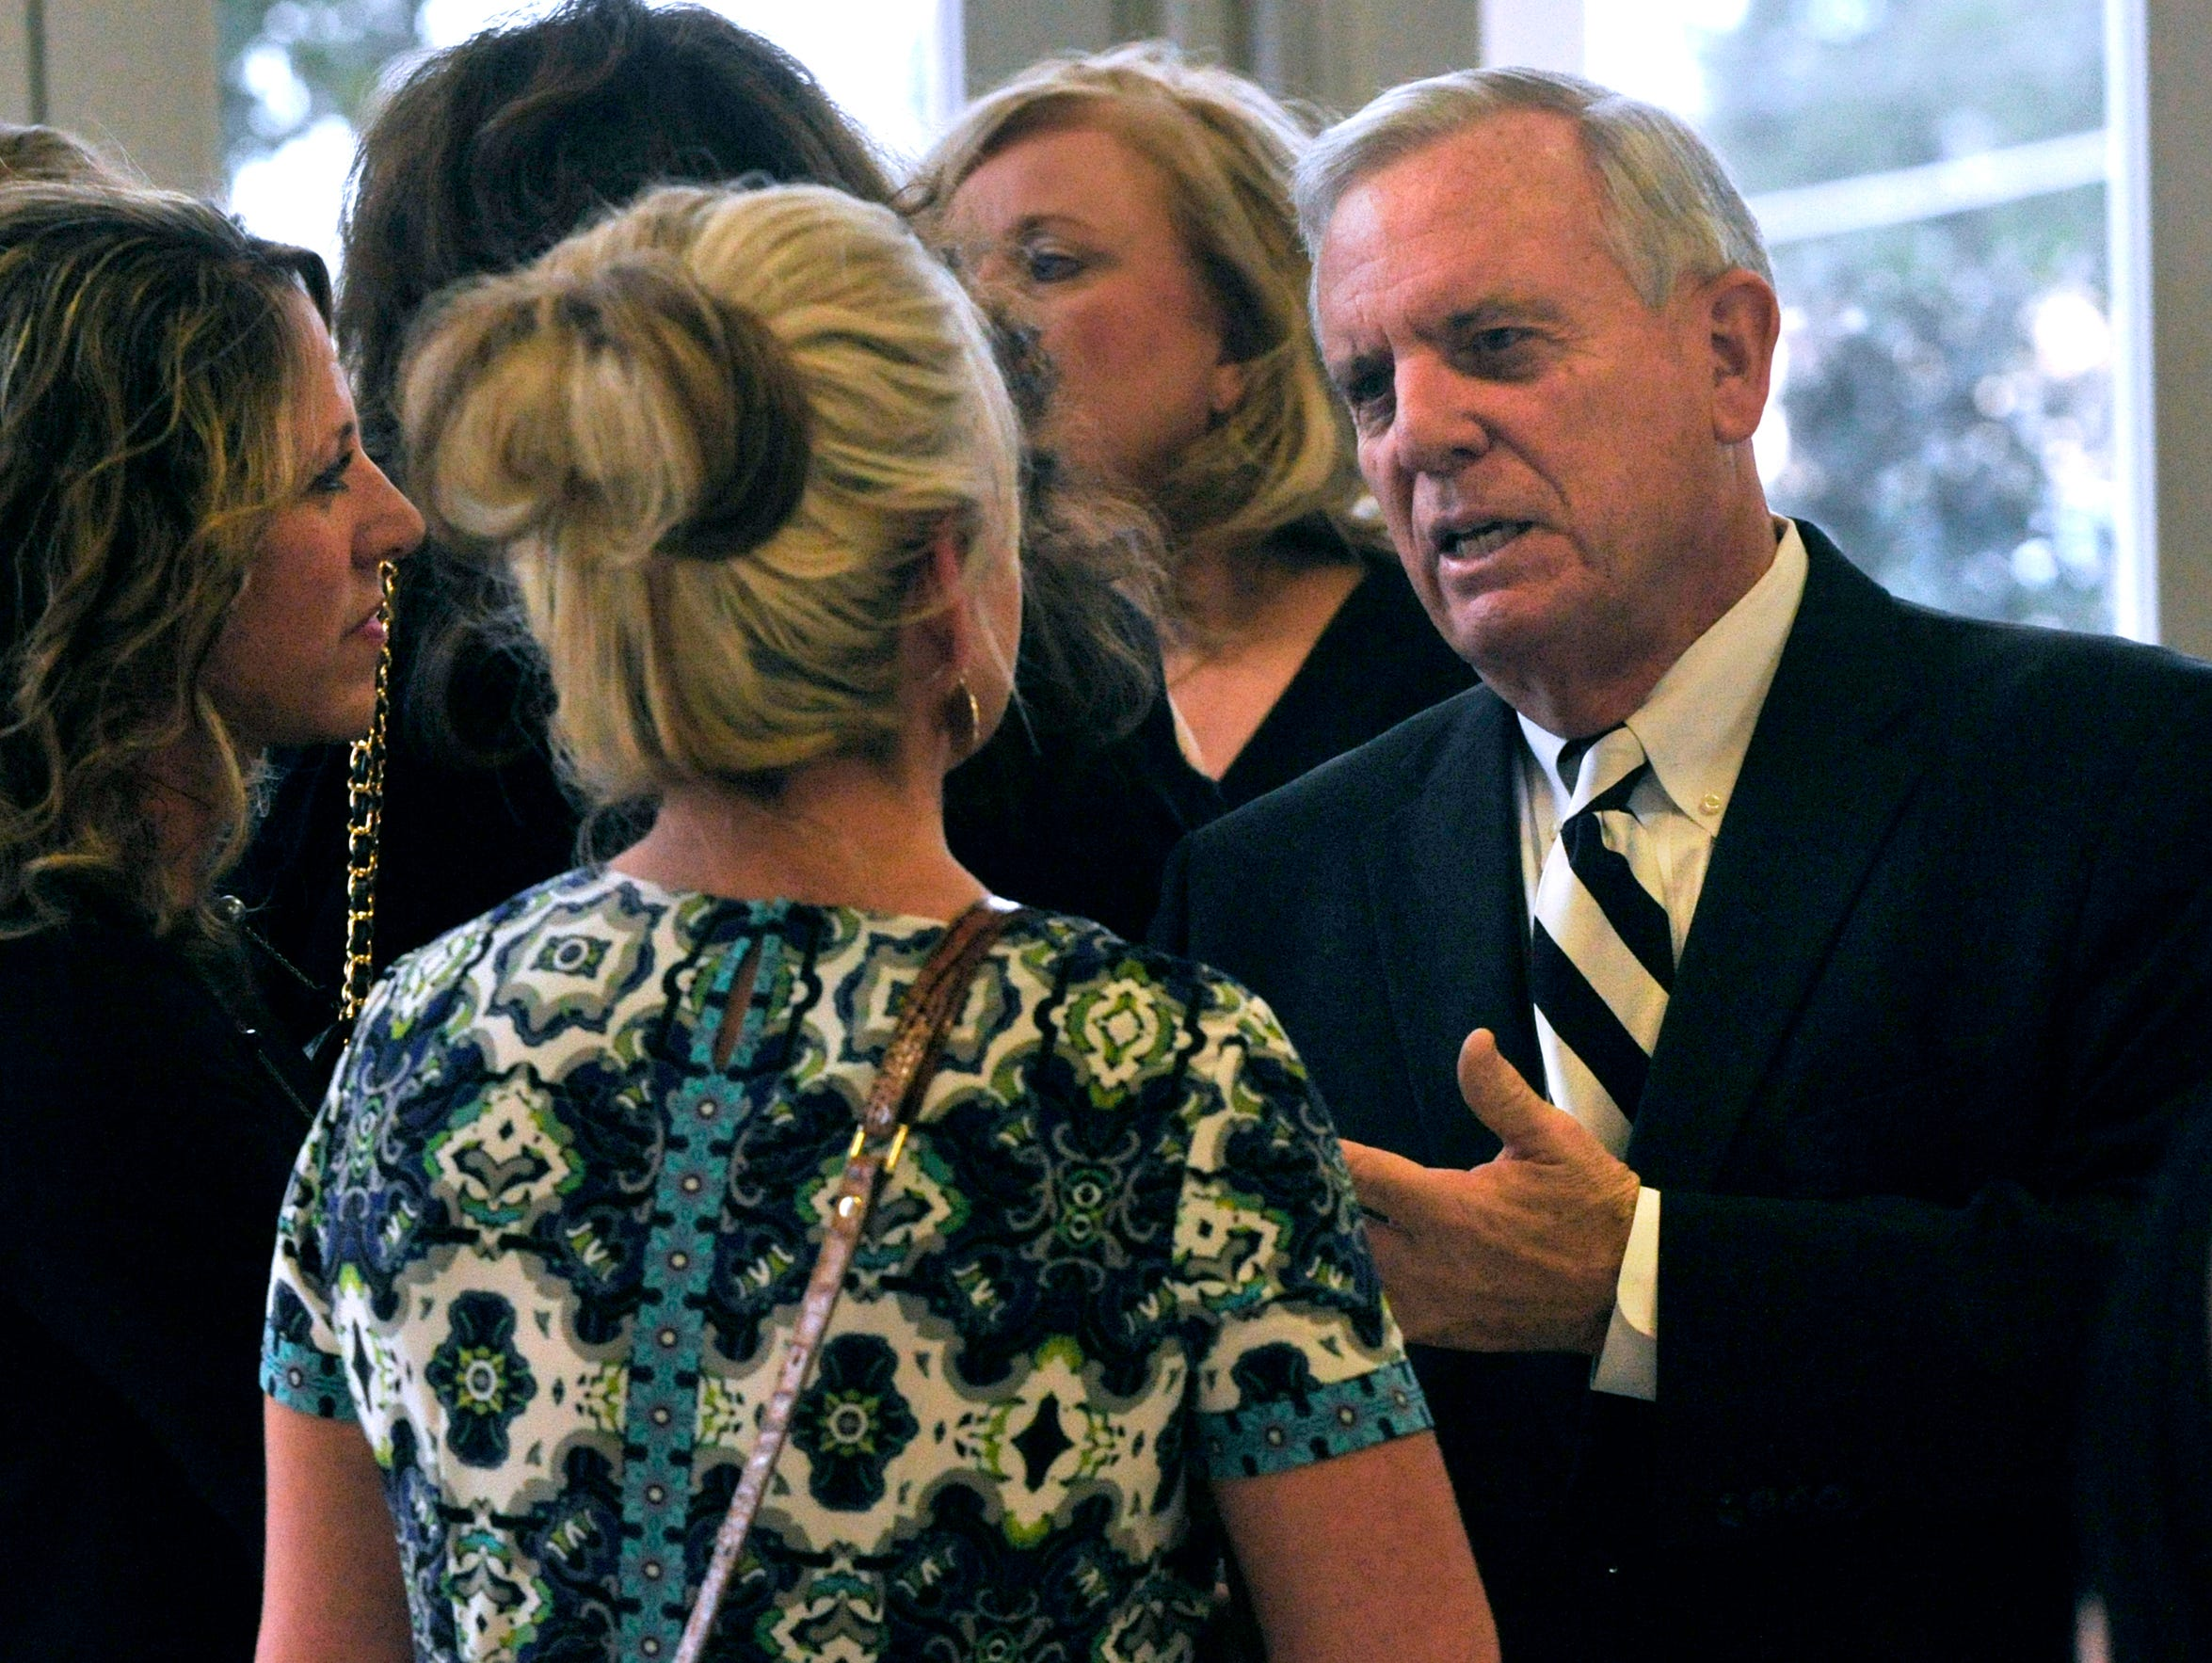 Former Abilene Mayor Norm Archibald speaks to other attendees Thursday evening at the Abilene Convention Center. Archibald later was named as the 2017 Outstanding Citizen of the Year by the Abilene Chamber of Commerce at its annual banquet.